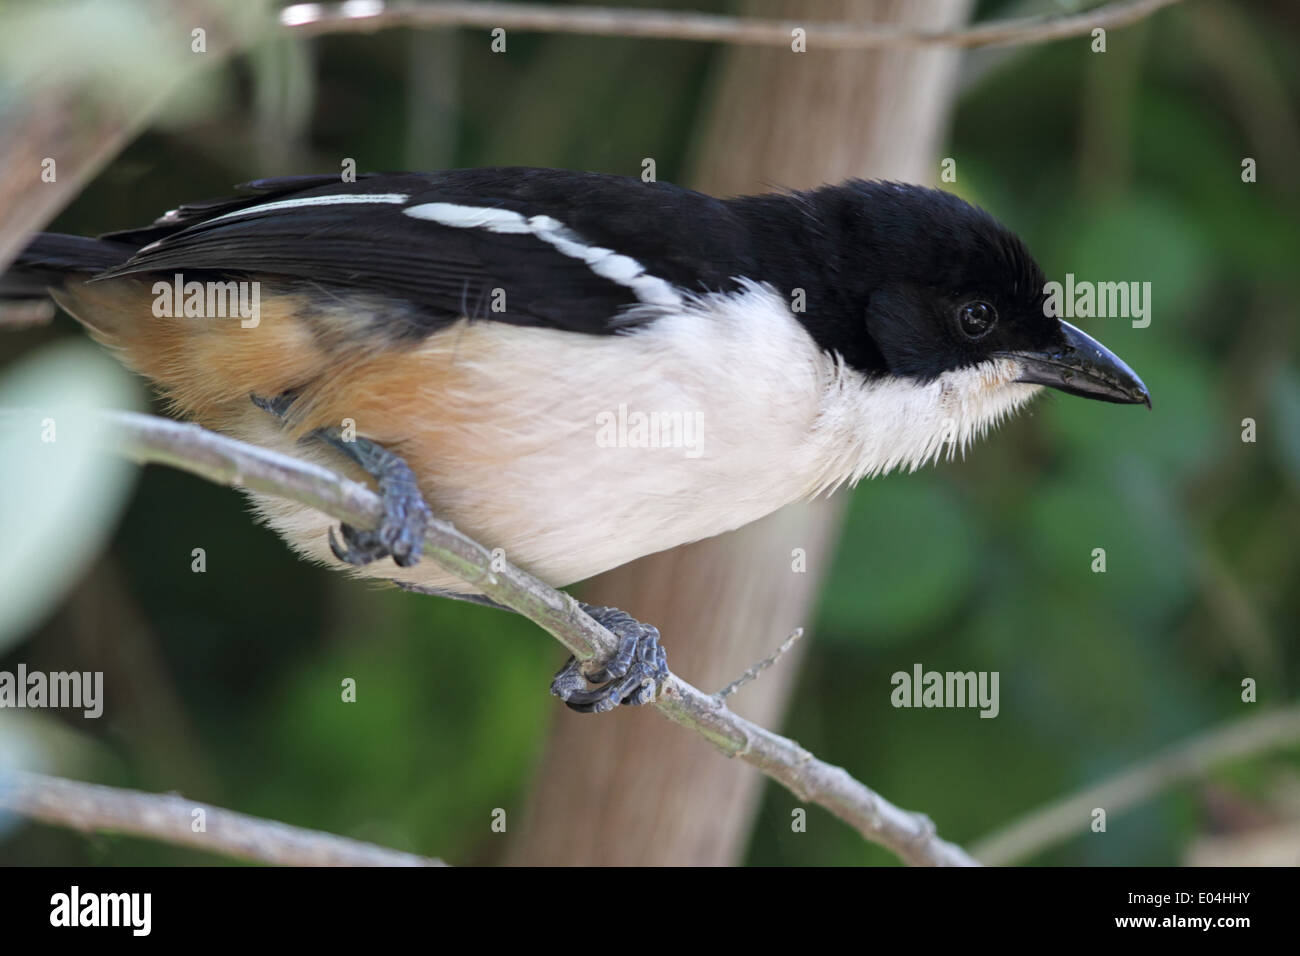 Fiscal Shrike (Lanius collaris) sitting in a bush at Boulders Beach near Simons Town, Südafrika. - Stock Image